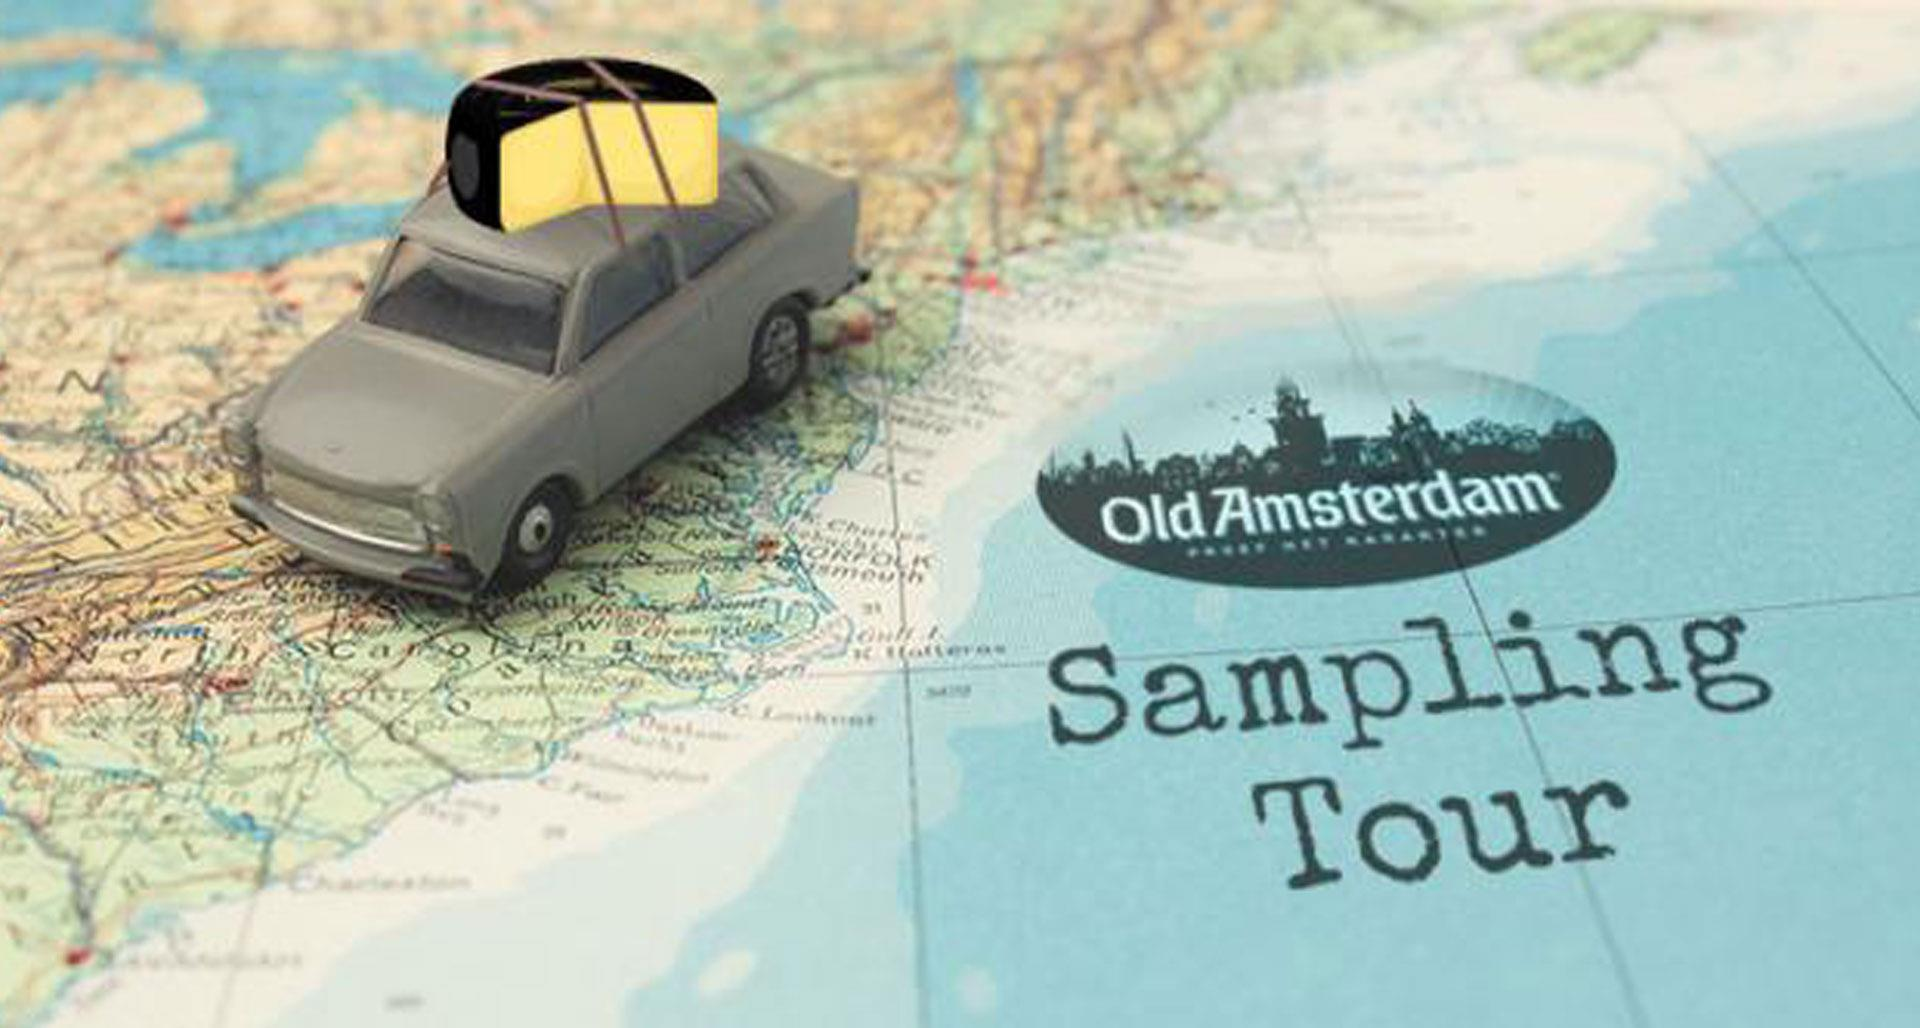 Old Amsterdam Launches Grassroots Sampling Tour